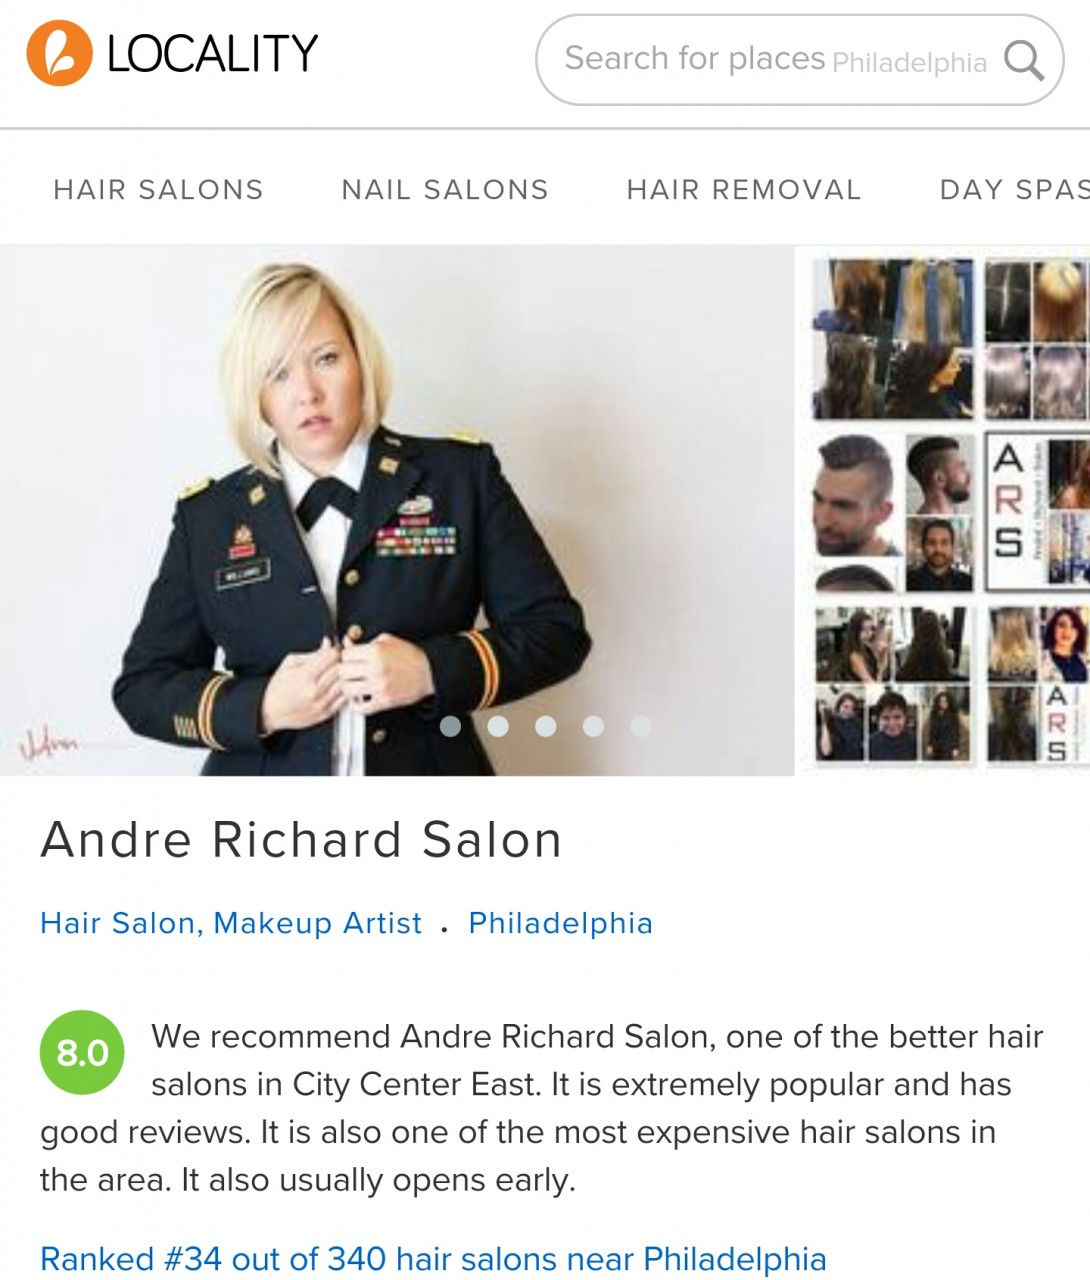 andré richard salon philadelphia, pa